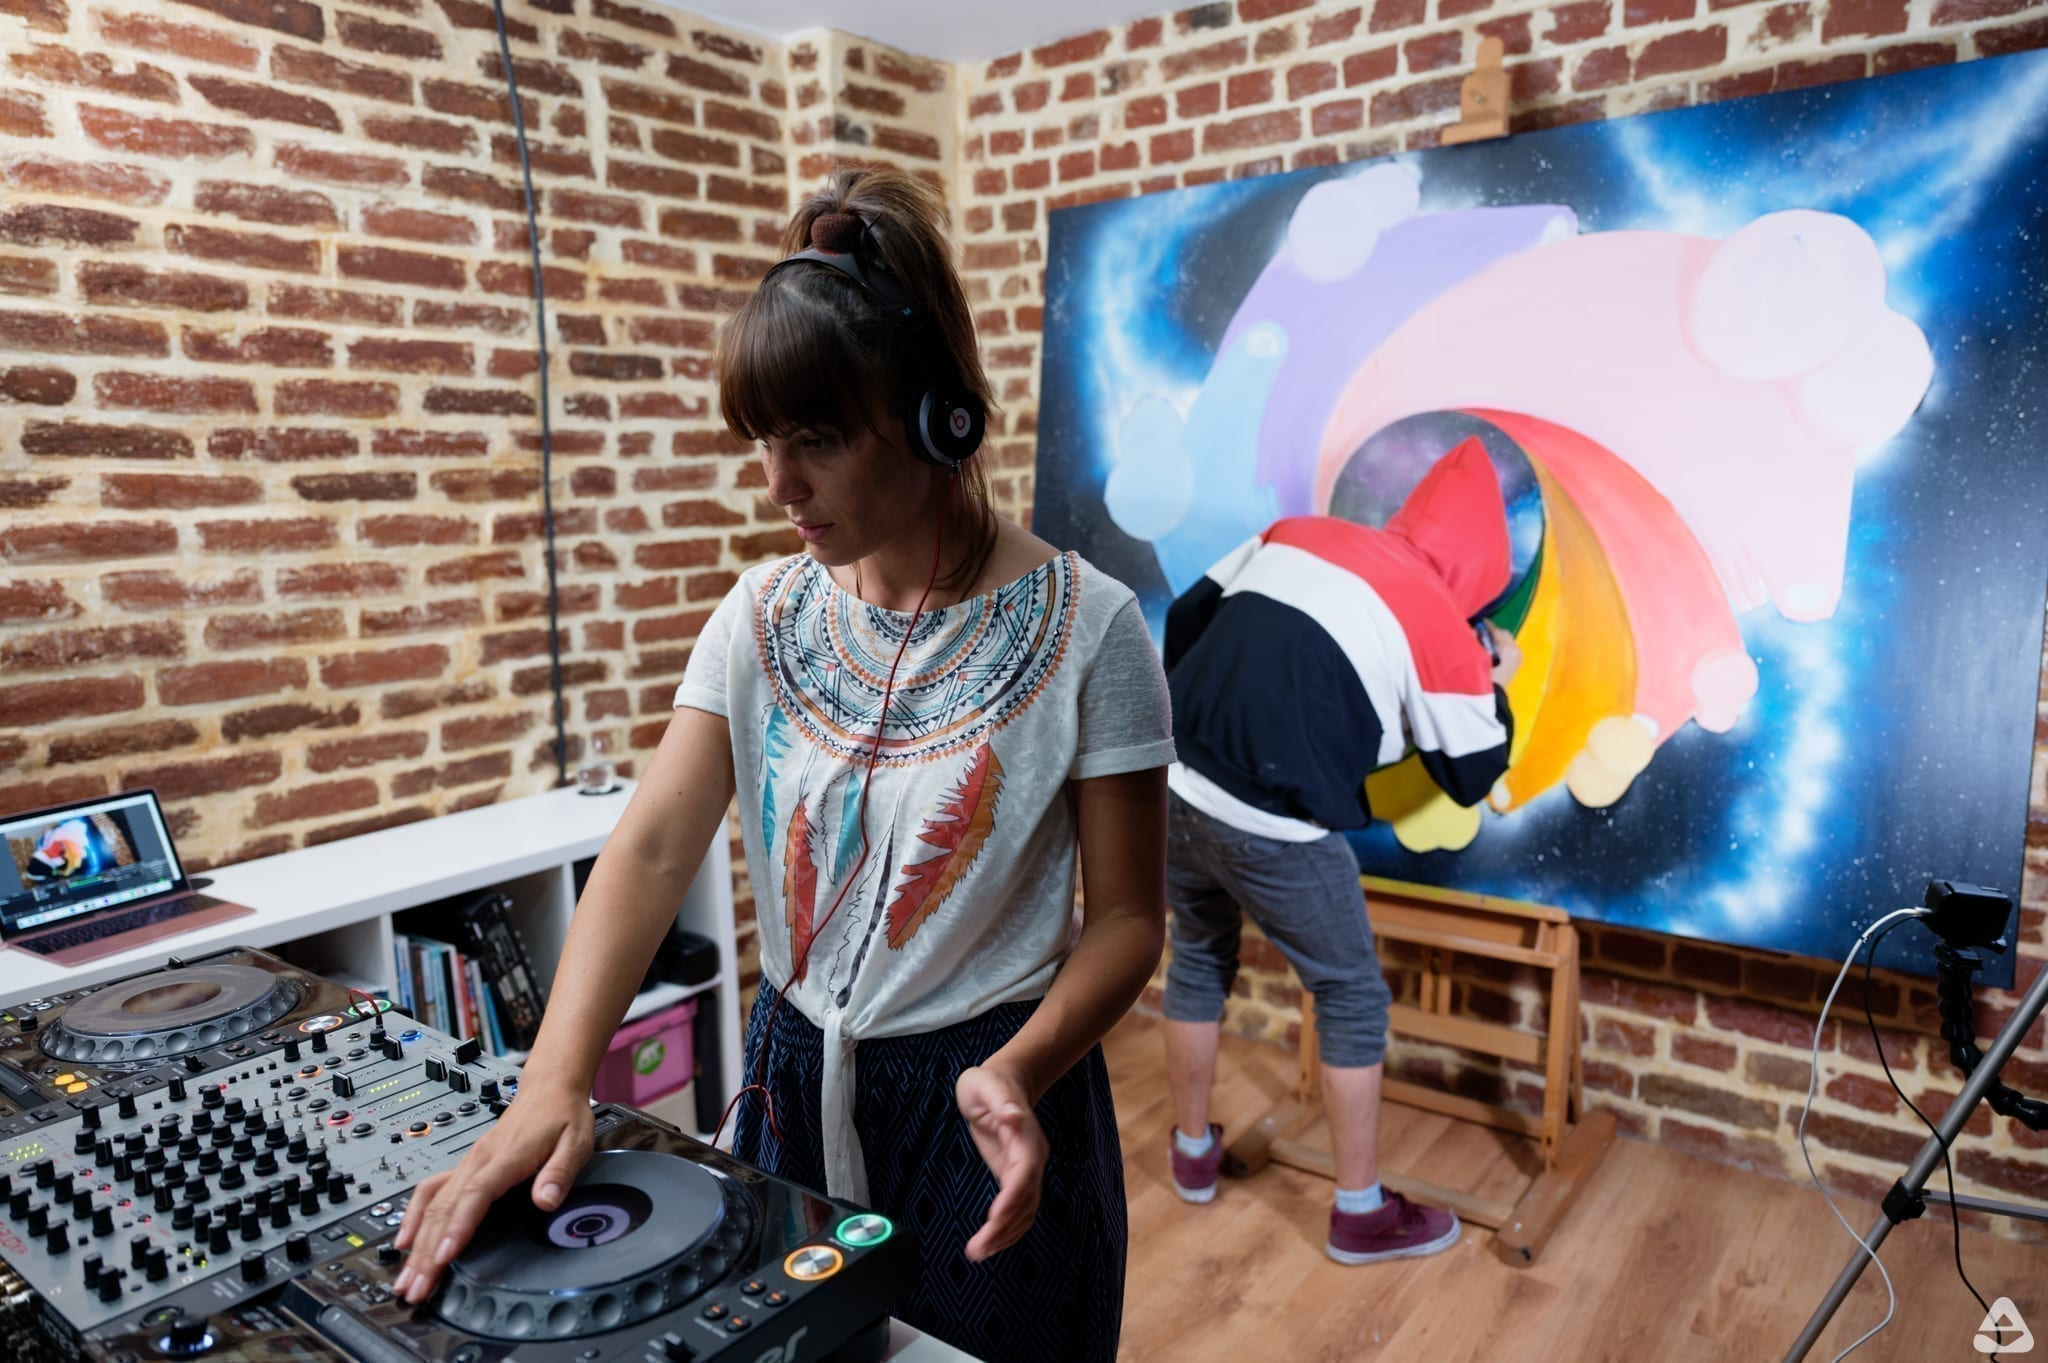 feeder sound LIVE STREAMS with CR15TINA (dj set) & AEUL (live painting)